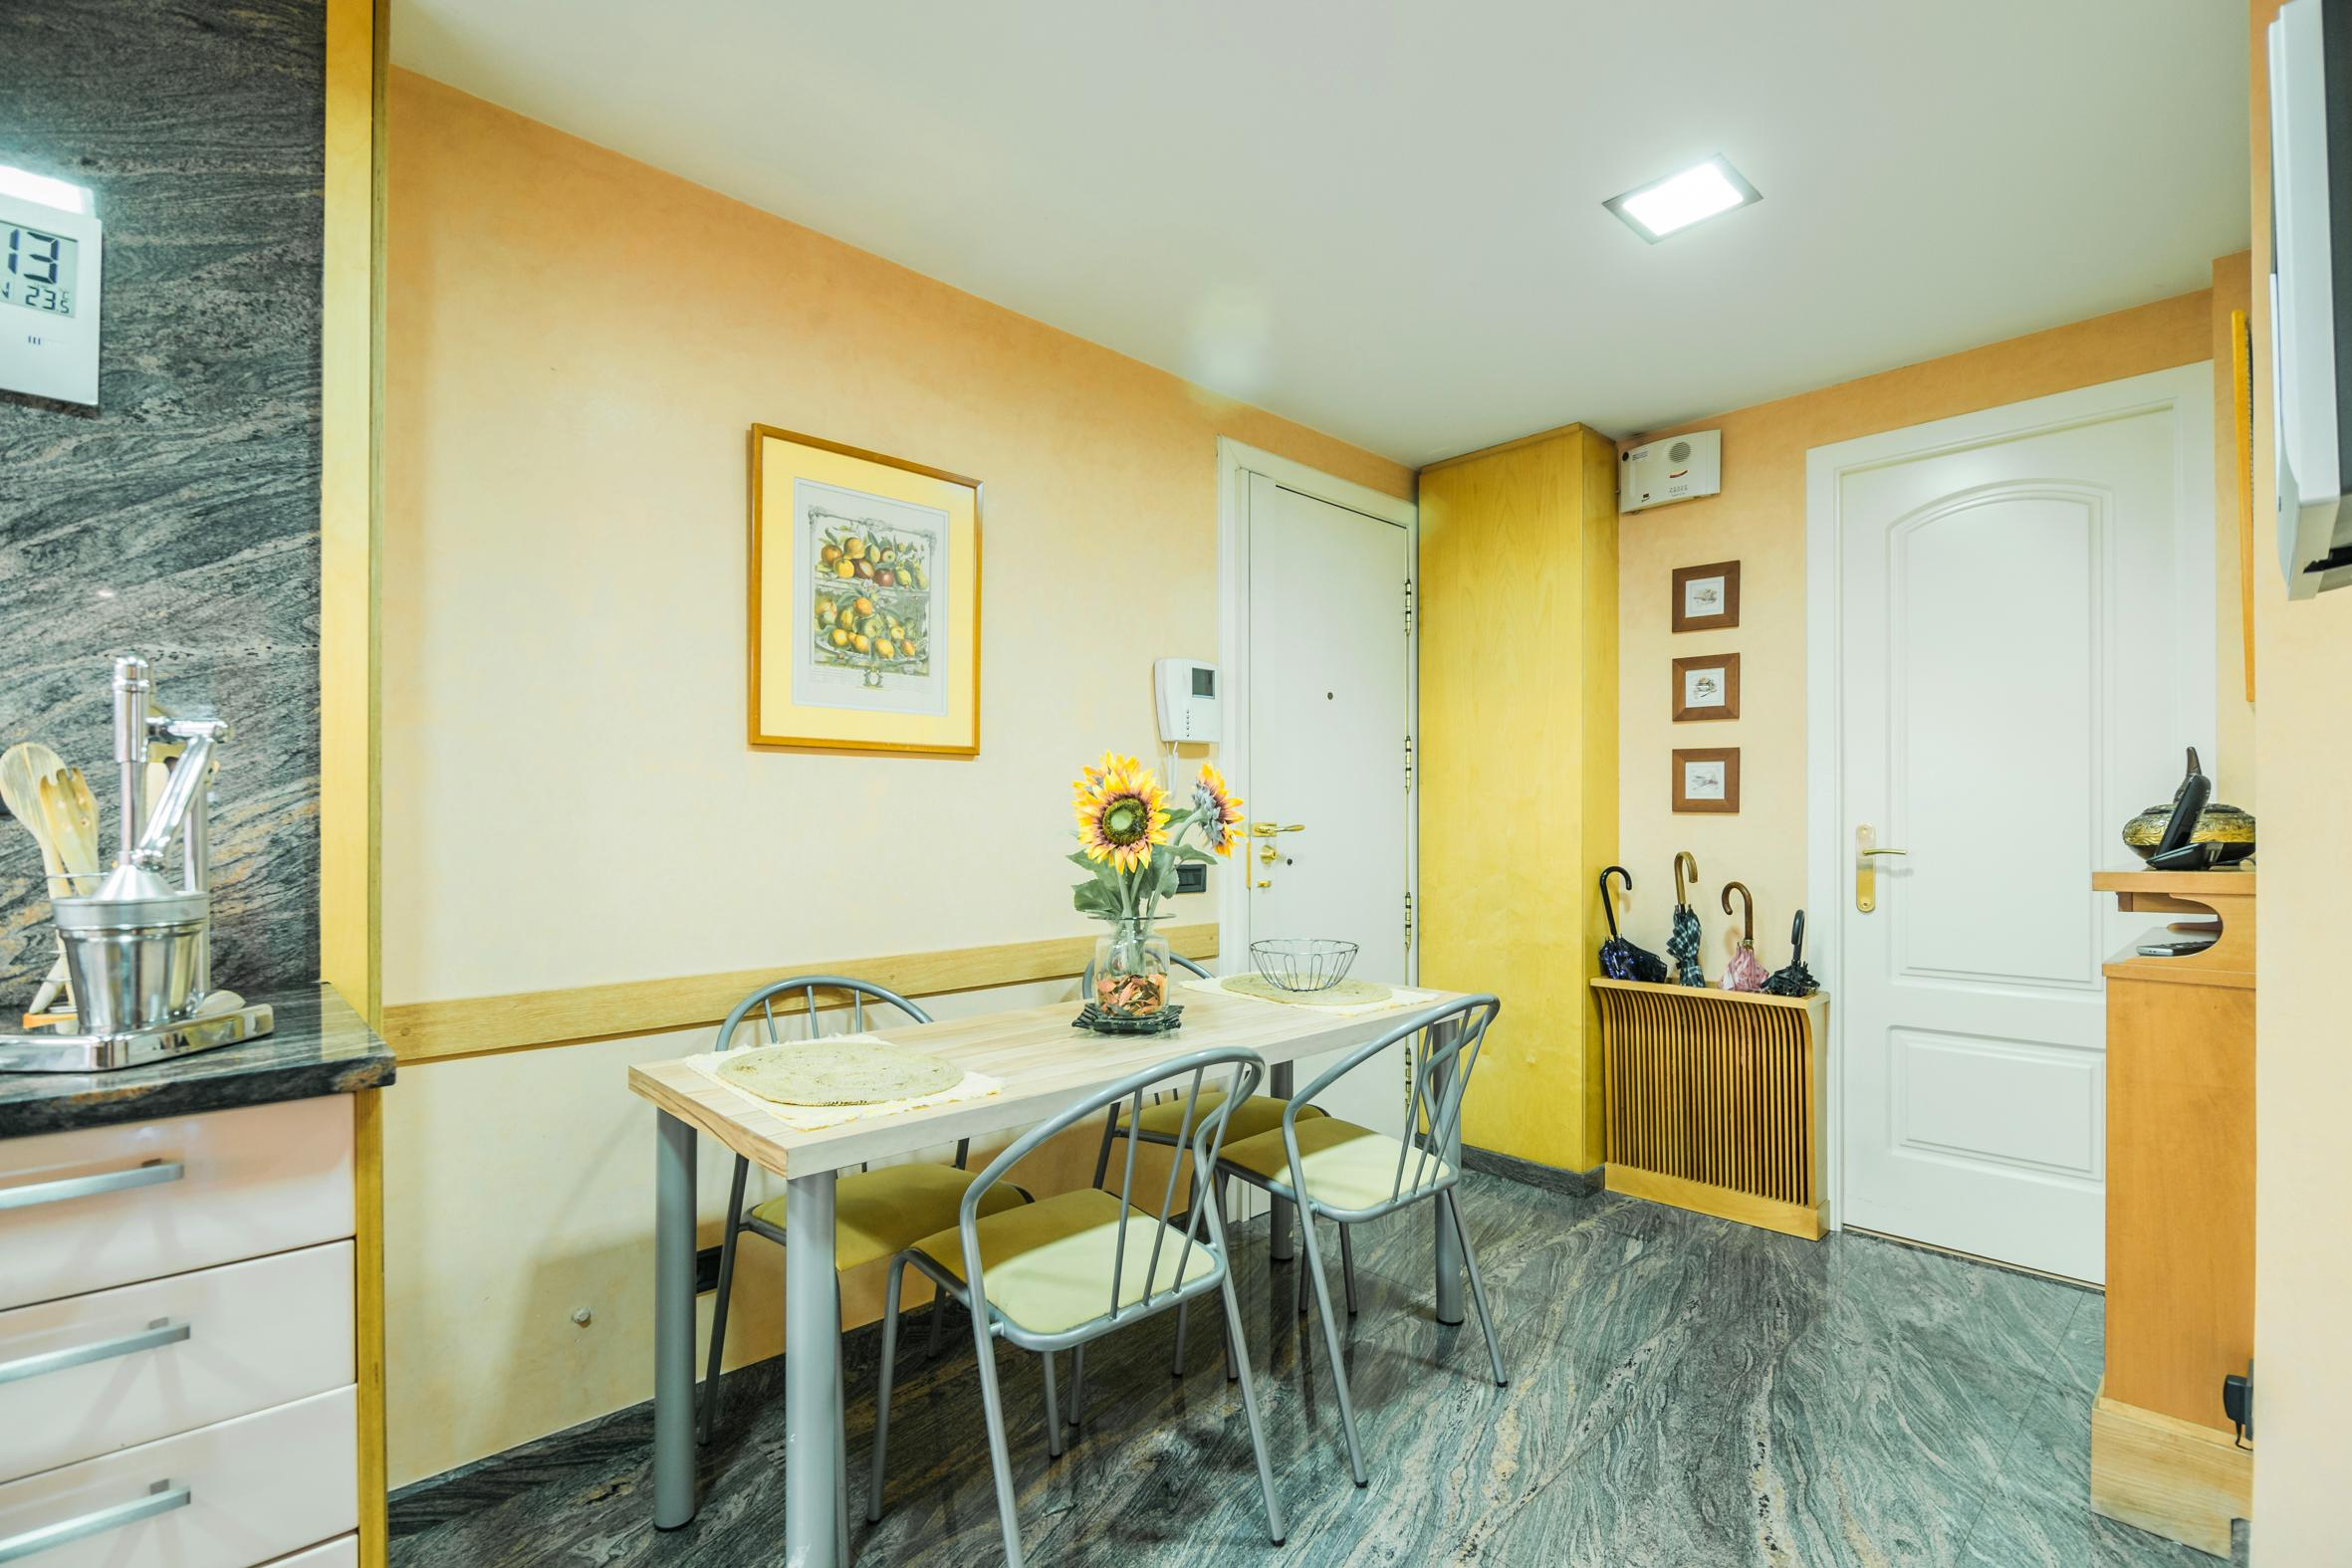 207709 Apartment for sale in Sarrià-Sant Gervasi, Tres Torres 13